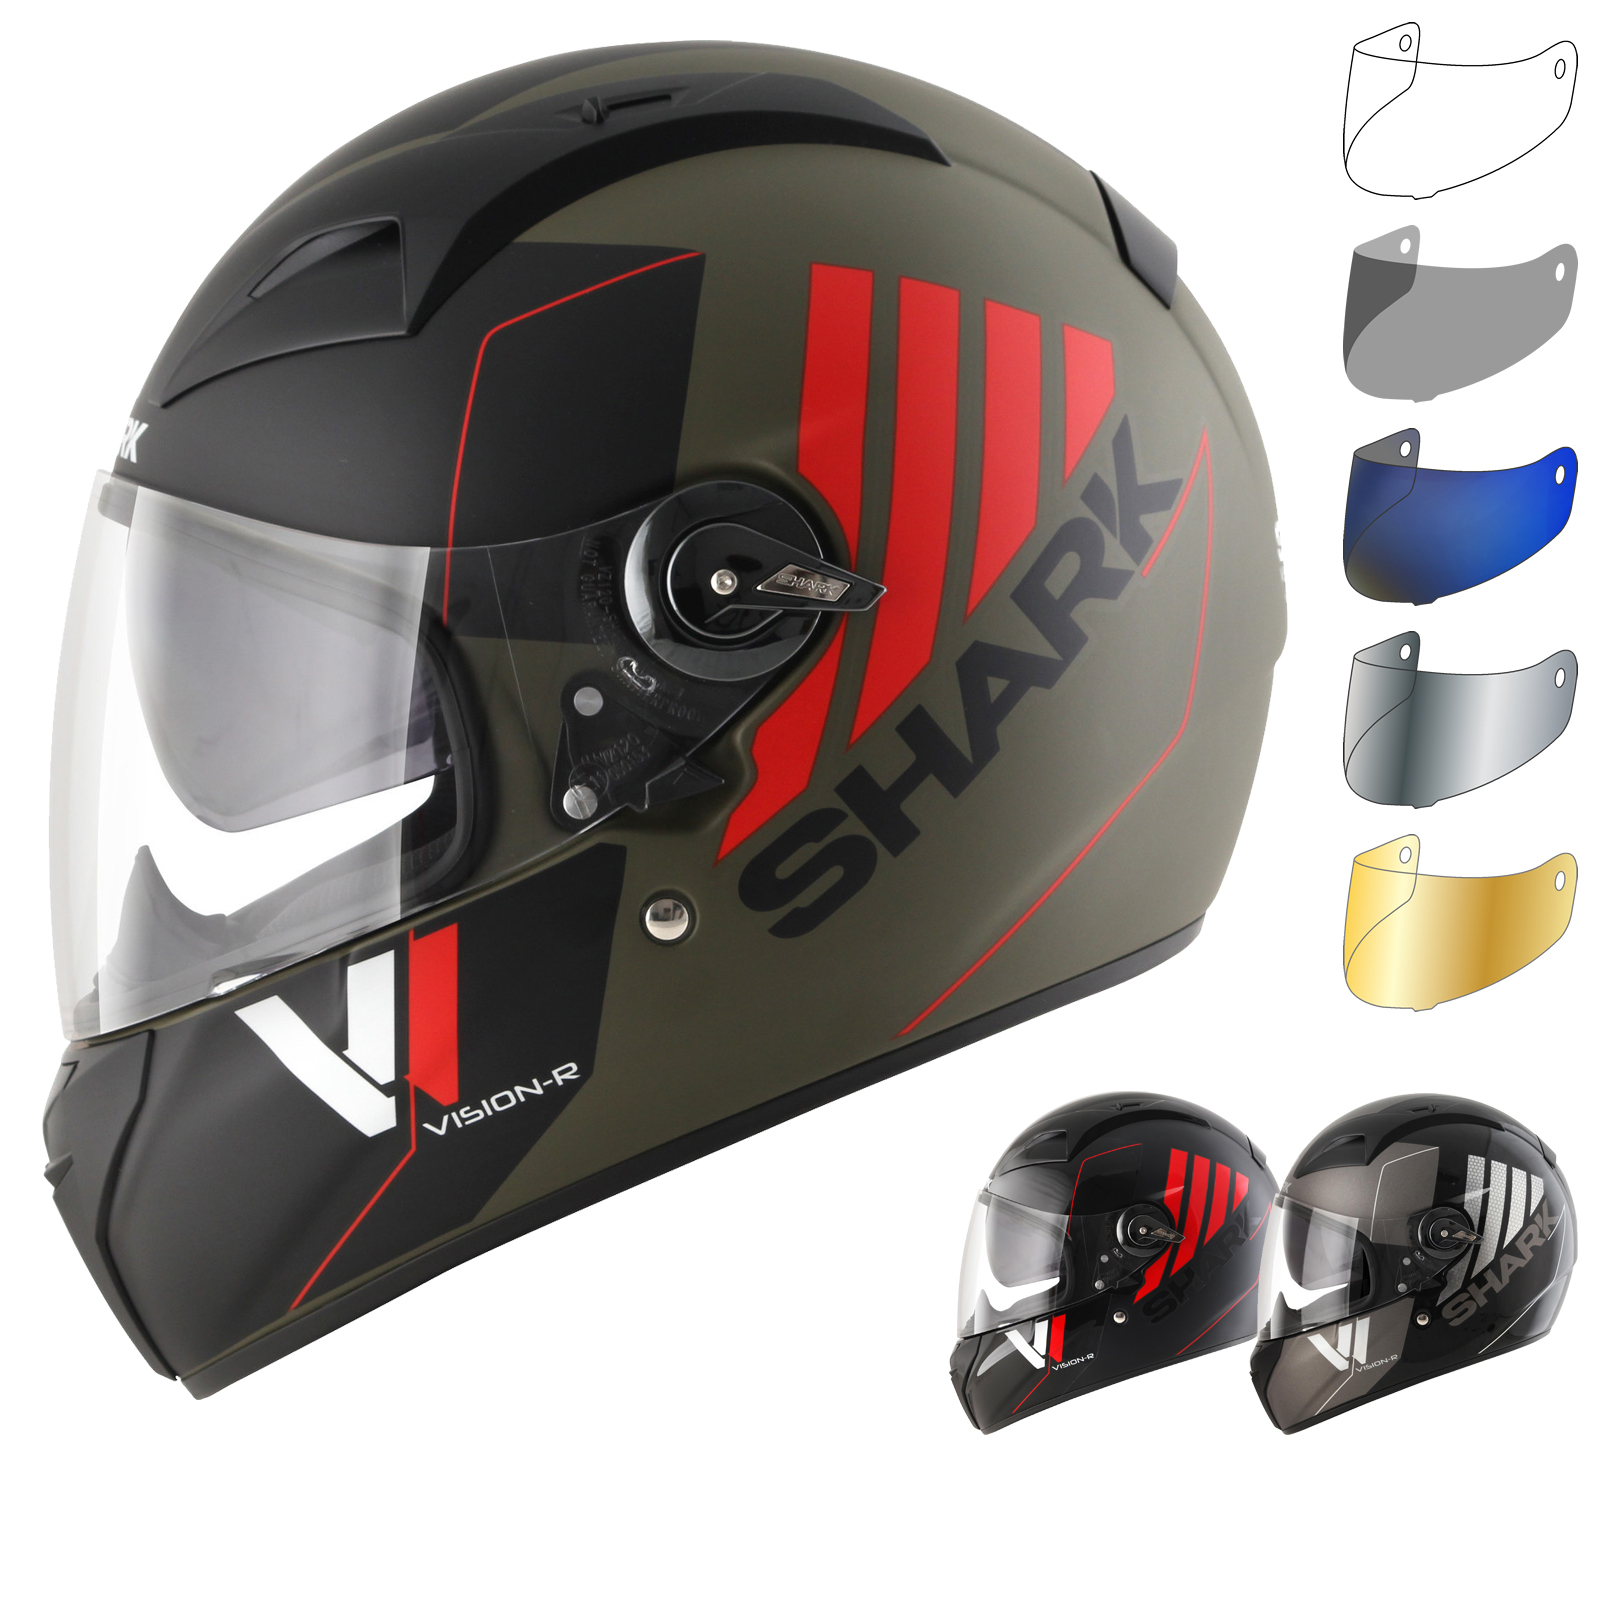 shark vision r series 2 cartney motorcycle helmet visor full face helmets. Black Bedroom Furniture Sets. Home Design Ideas